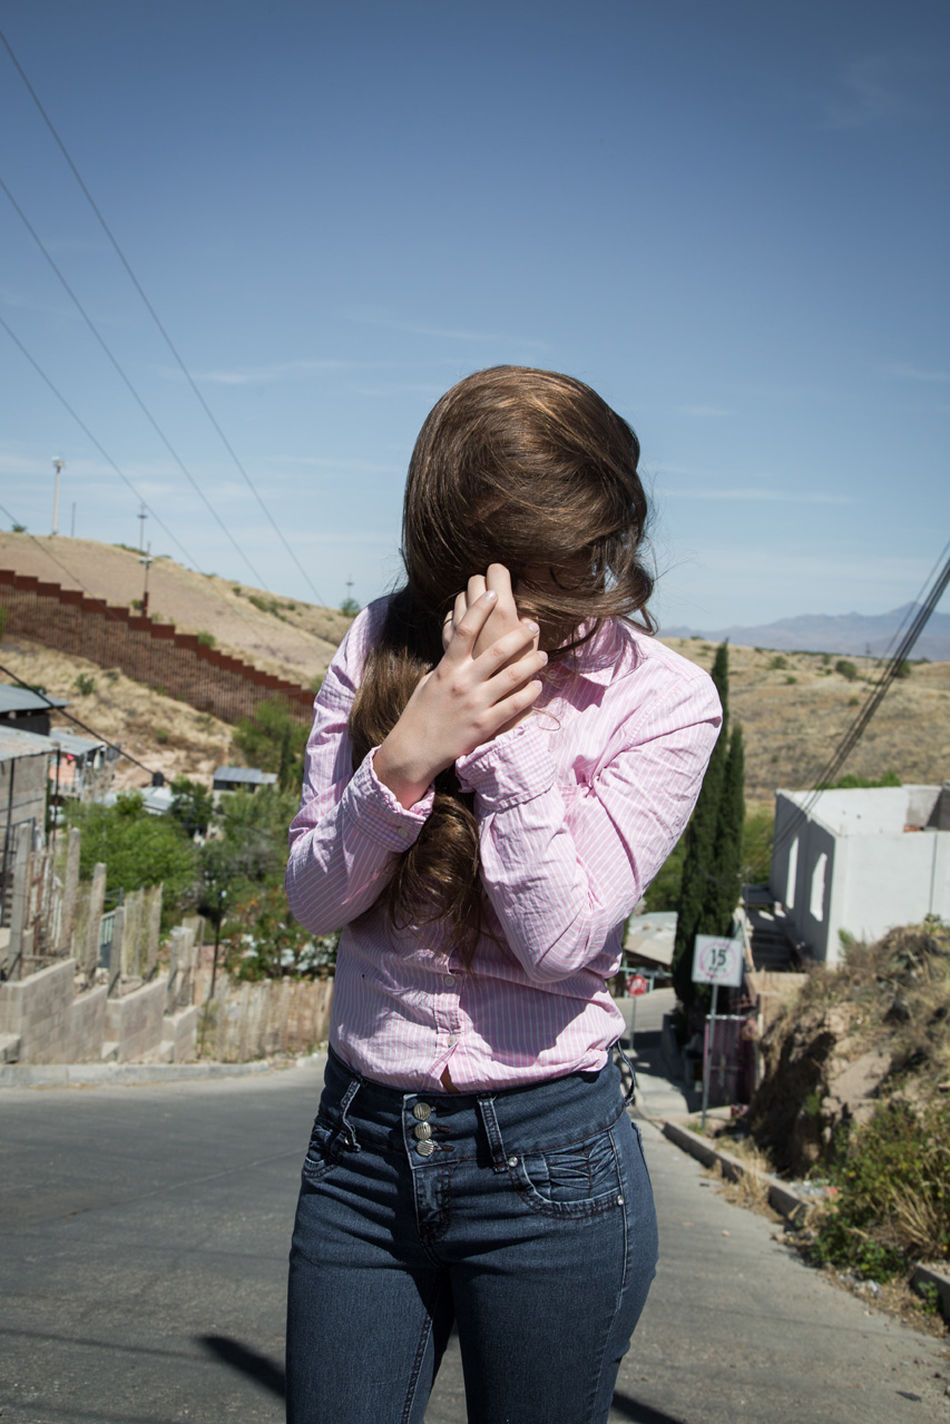 Johanna, who lives in Nogales, near the fence which divides the town between Arizona, US and Sonora, Mexico. Arizona Blue Border Border Town Day Girl Lifestyles Long Hair Nogales Outdoors Sonora Trapped Us Mexico Border Young